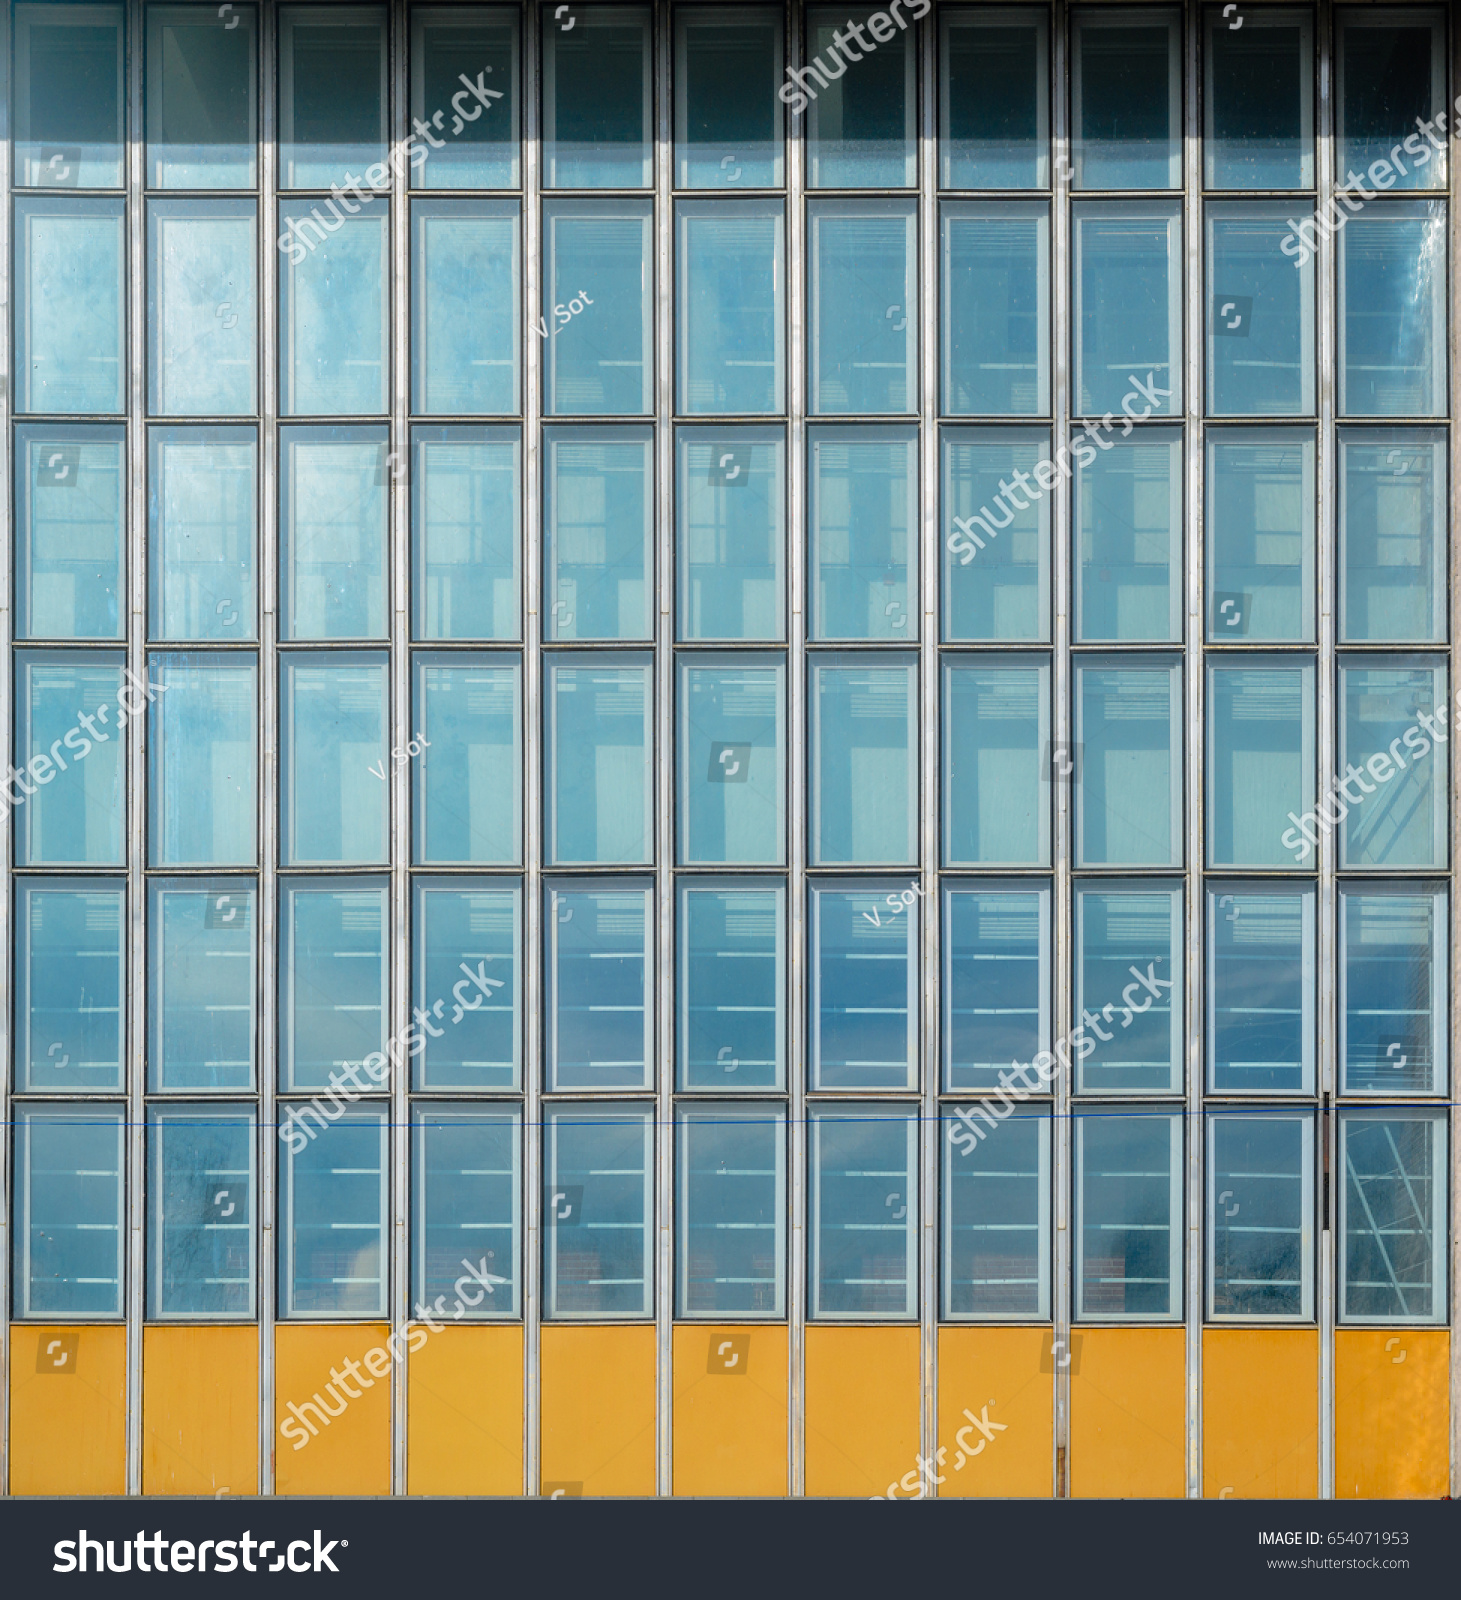 Aluminium curtain wall systems metal technology - Architecture Abstract Background Glass Curtain Wall Texture Stained Glass System Based On Outdated